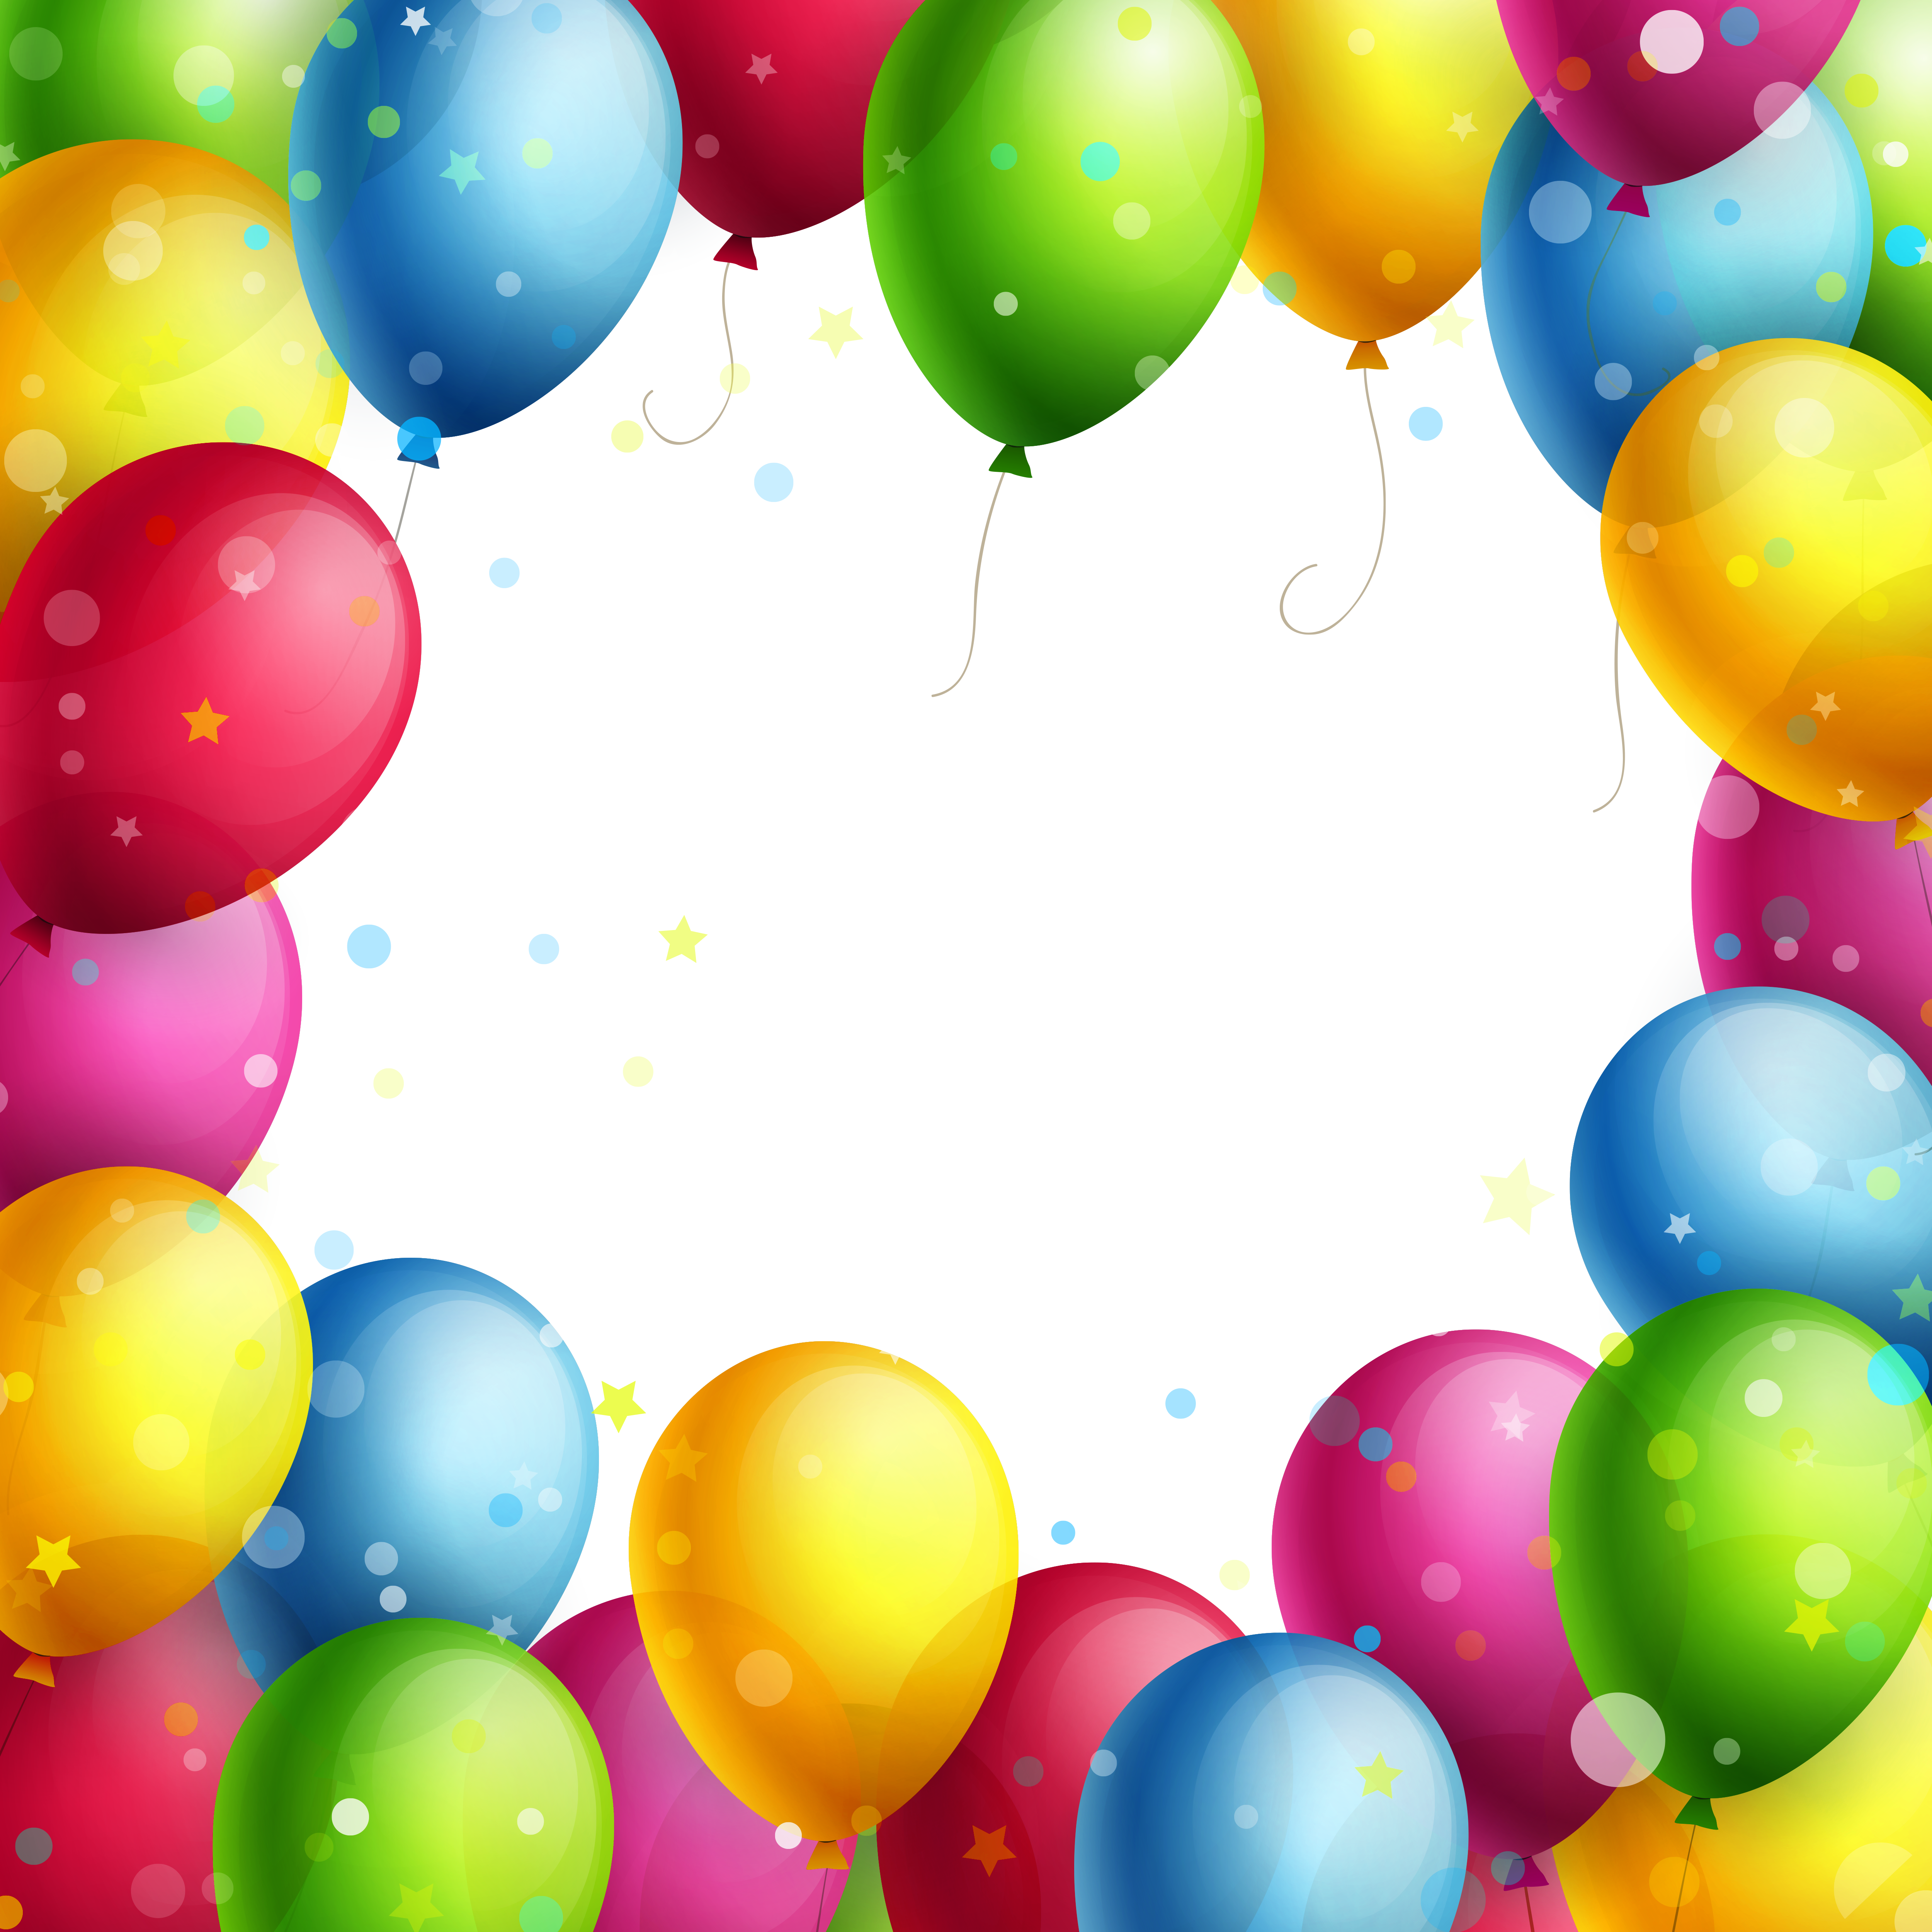 Transparent balloons png gallery. Clipart balloon frame